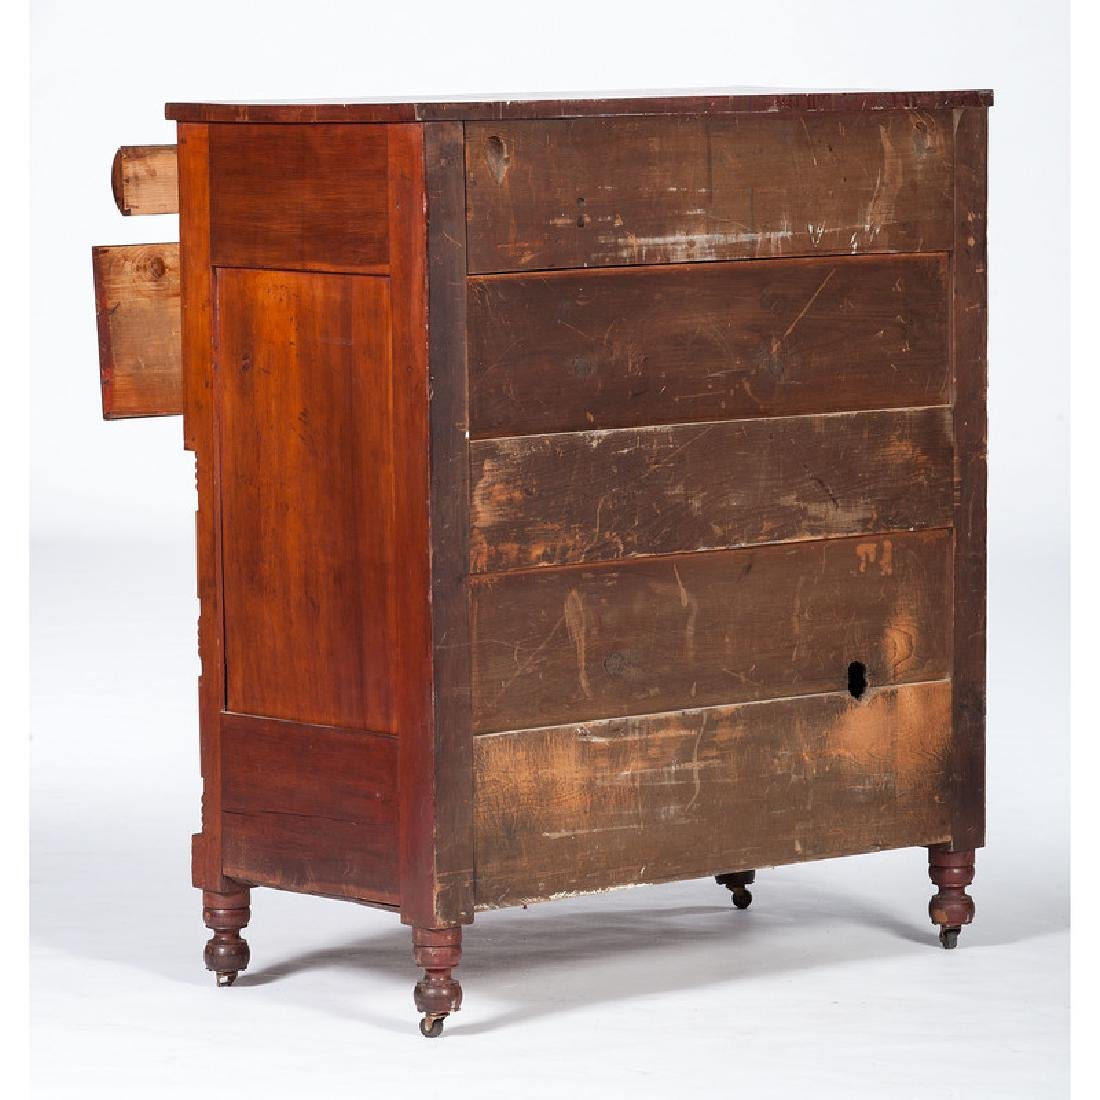 Transitional Sheraton Chest of Drawers - 2